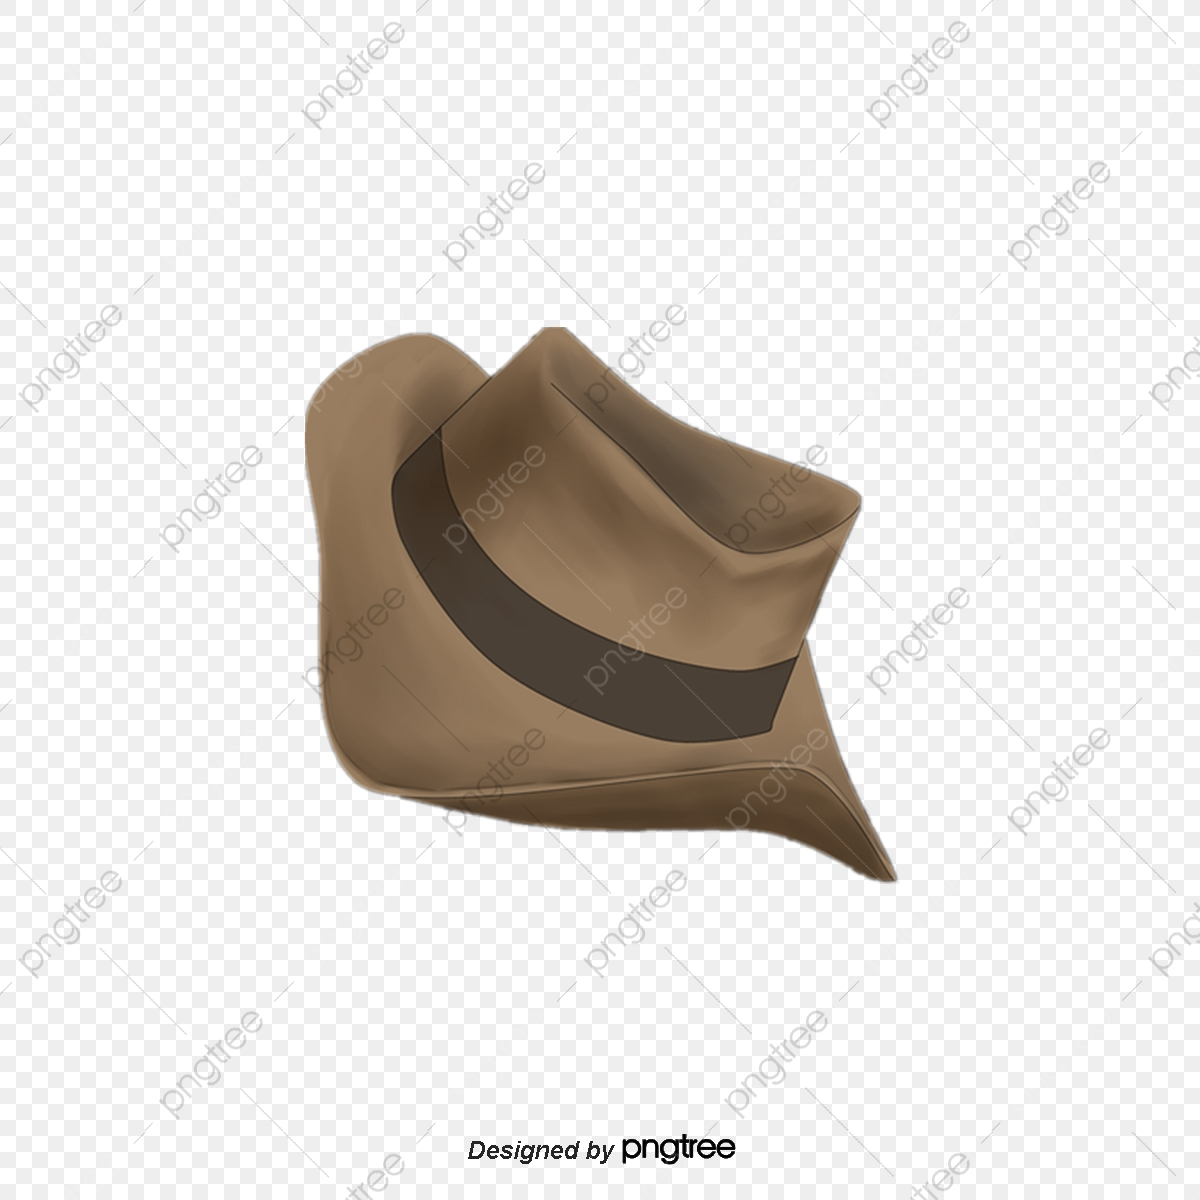 Transparent Clipart Cowboy Hat Png Transparent / Similar with graduate hat png.